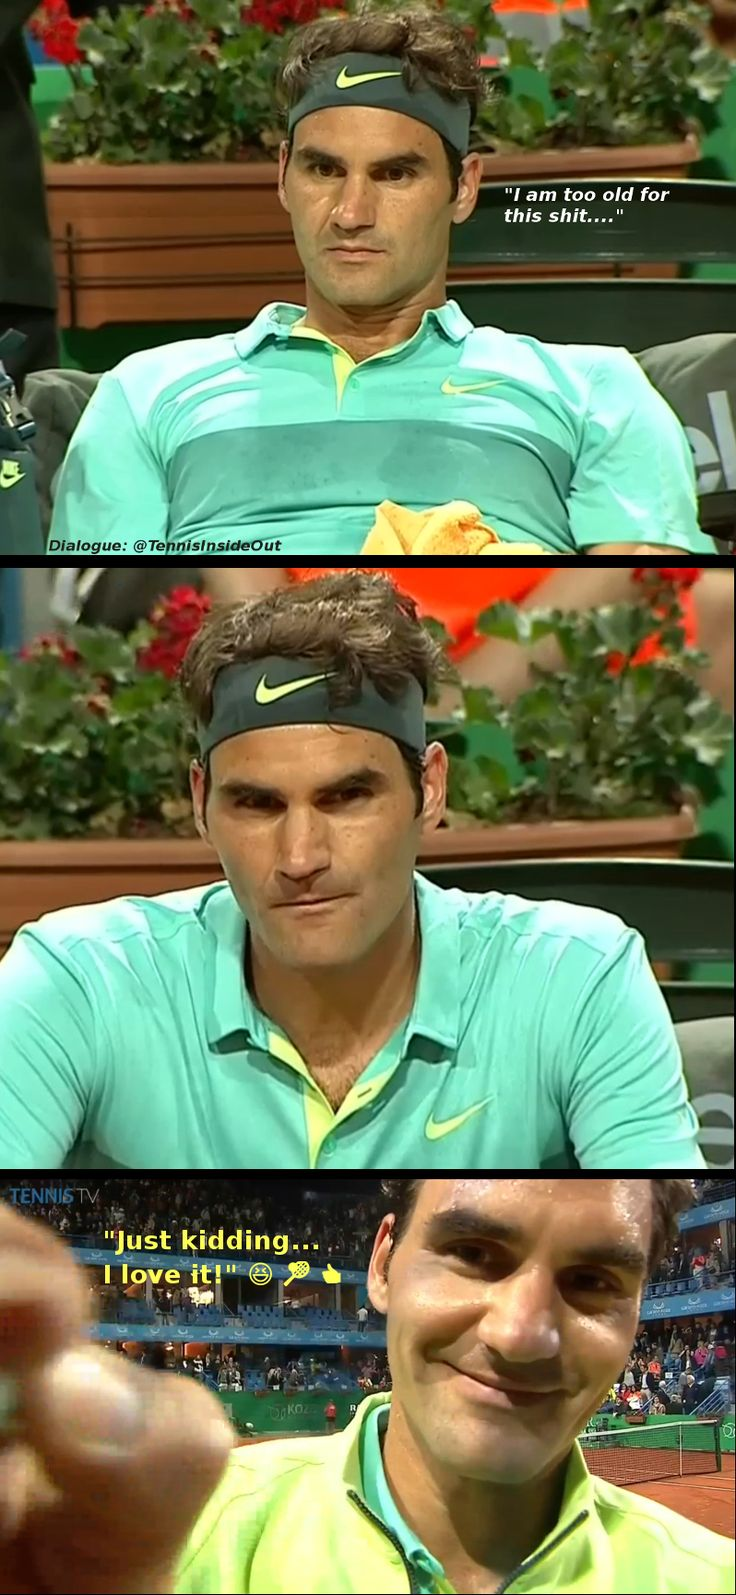 Roger Federer progression of thoughts too old for this shit just kidding I love it Istanbul tennis tournament 2015 Nieminen match sea green teal yellow polo Nike photos images pictures